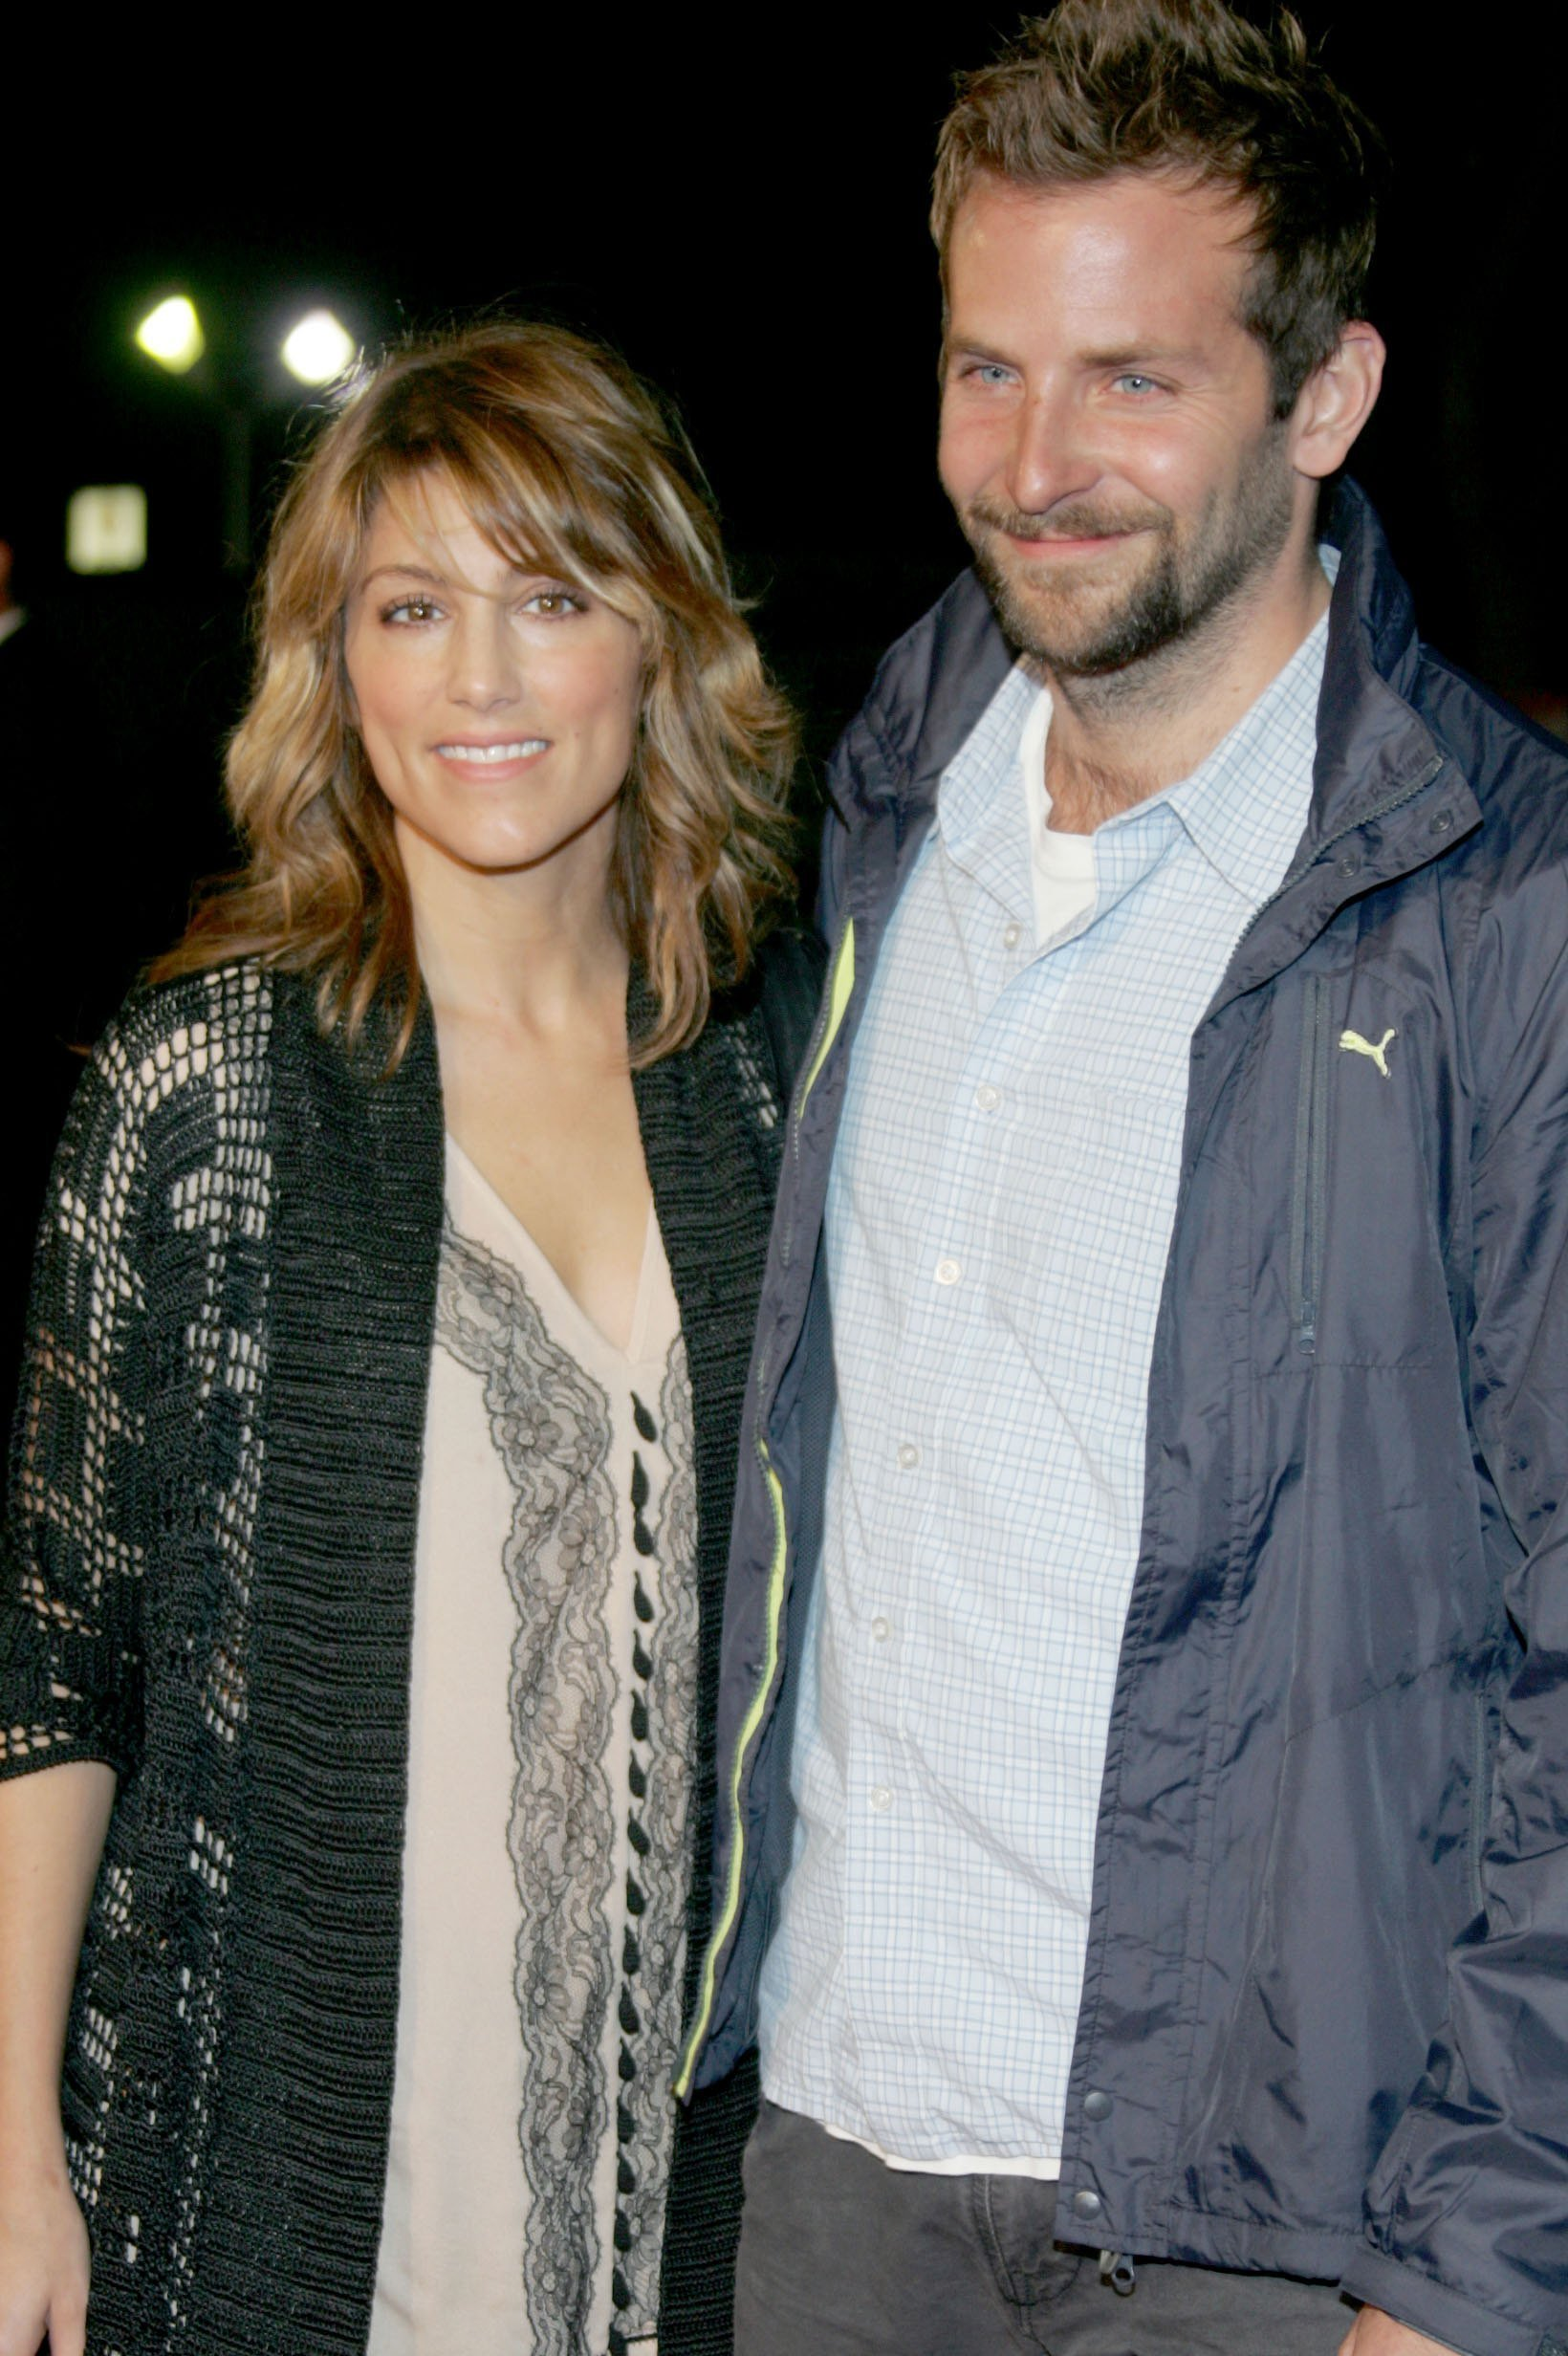 Jennifer Esposito and Bradley Cooper attending the Paramount Vantage premiere of 'Babel' in 2014 | Photo: Getty Images